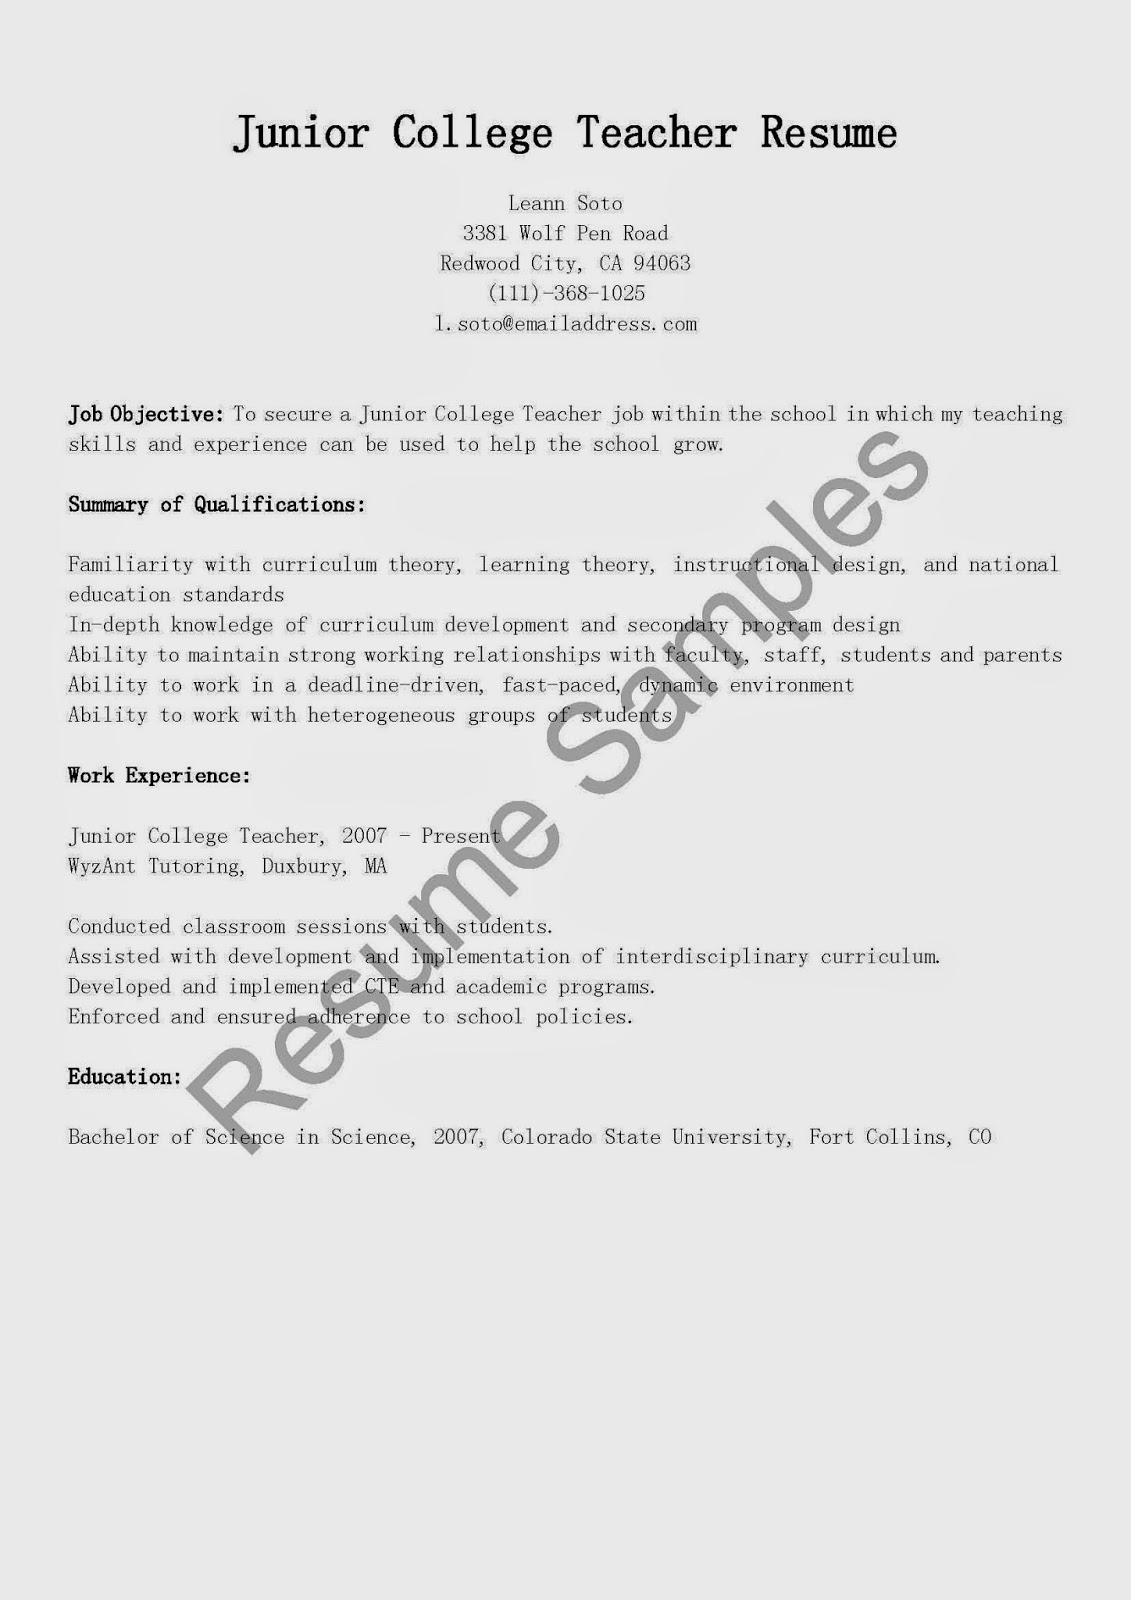 resume samples  junior college teacher resume sample